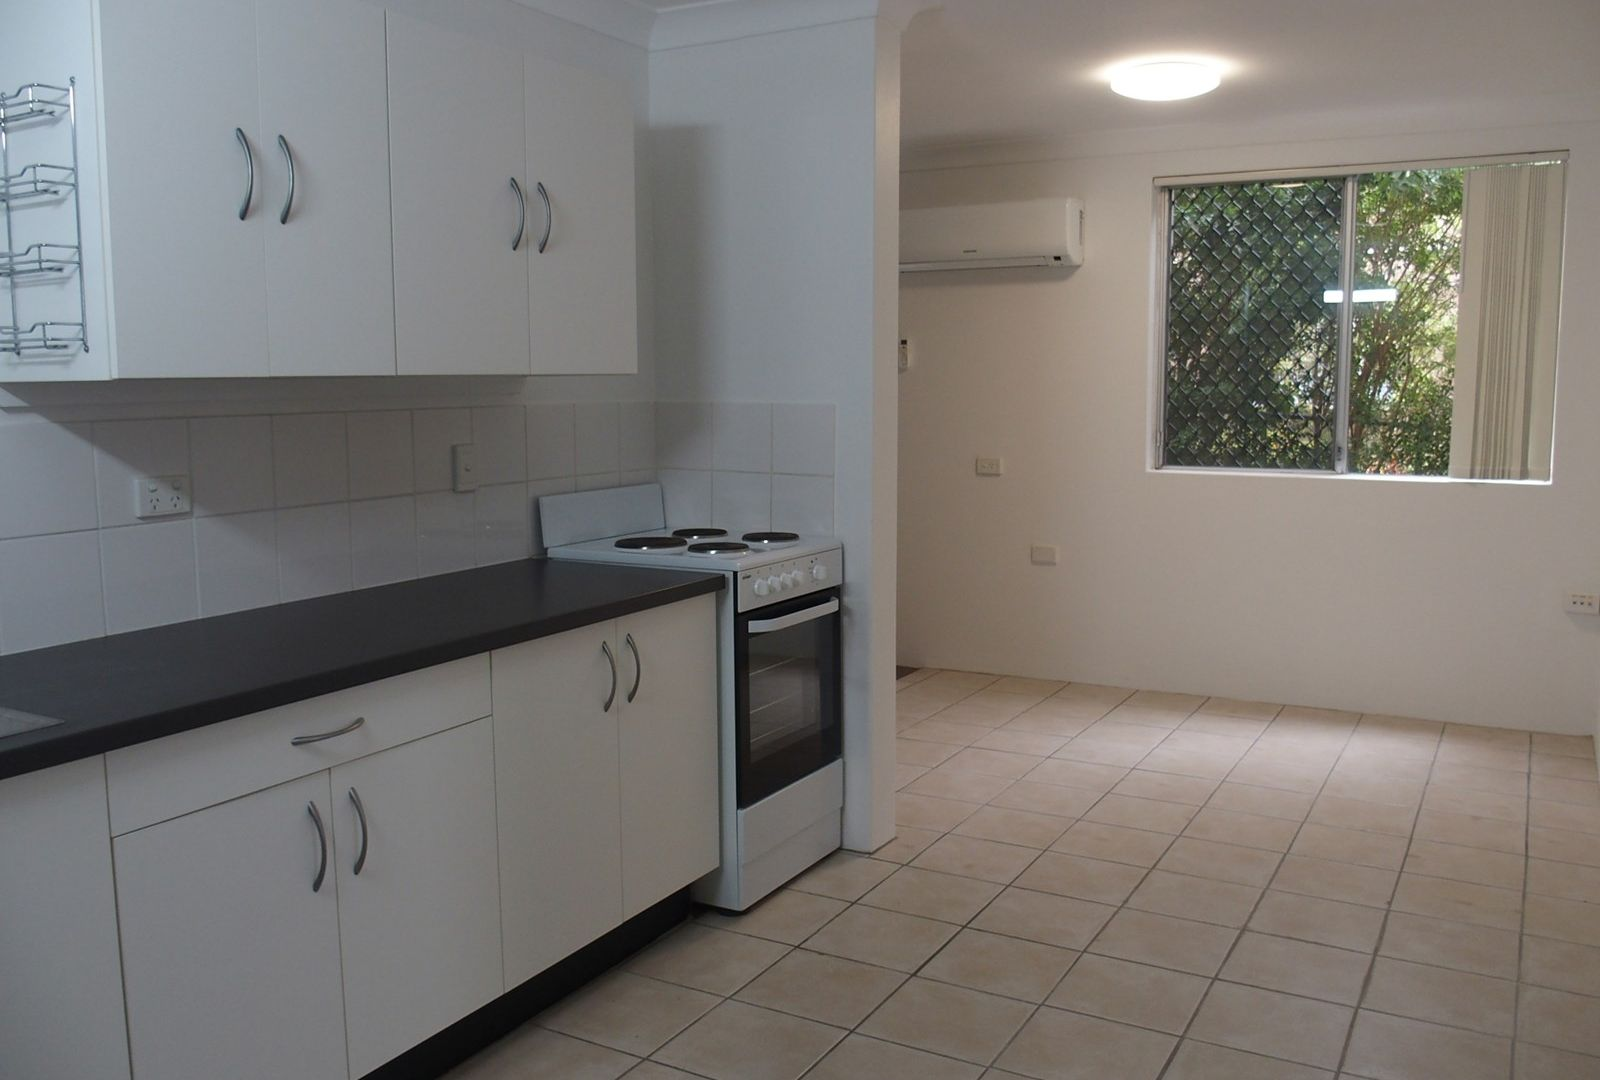 3/35 Galway St, Greenslopes QLD 4120, Image 1